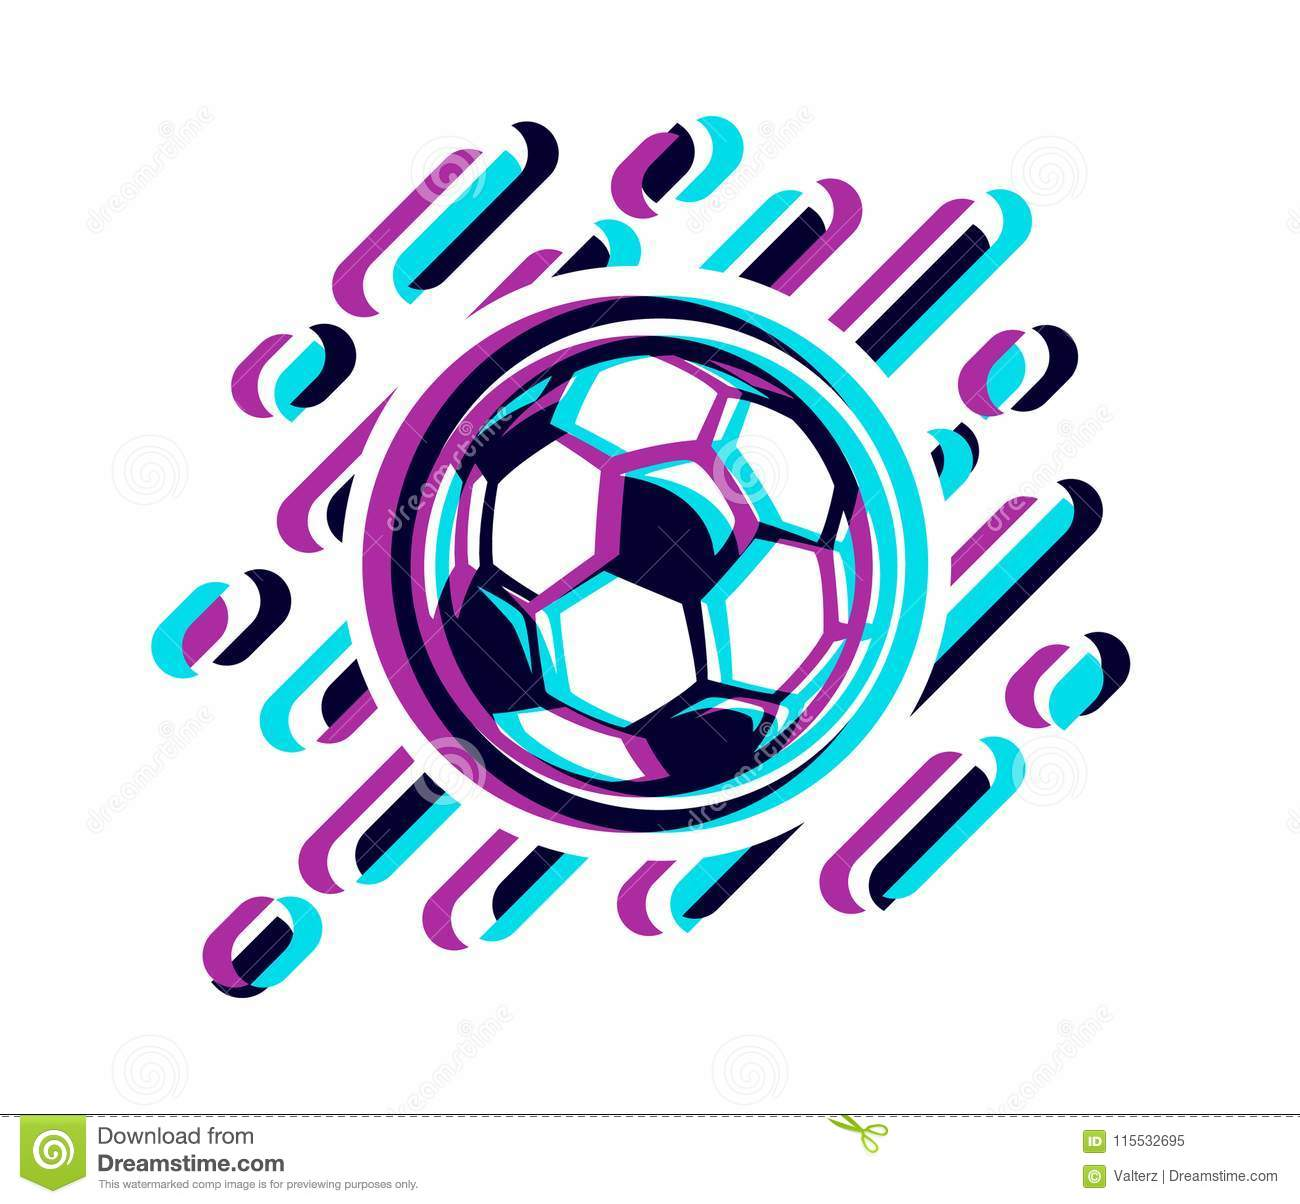 Soccer ball in a glitch effect vector illustration isolated on white. Football ball in a glitch effect